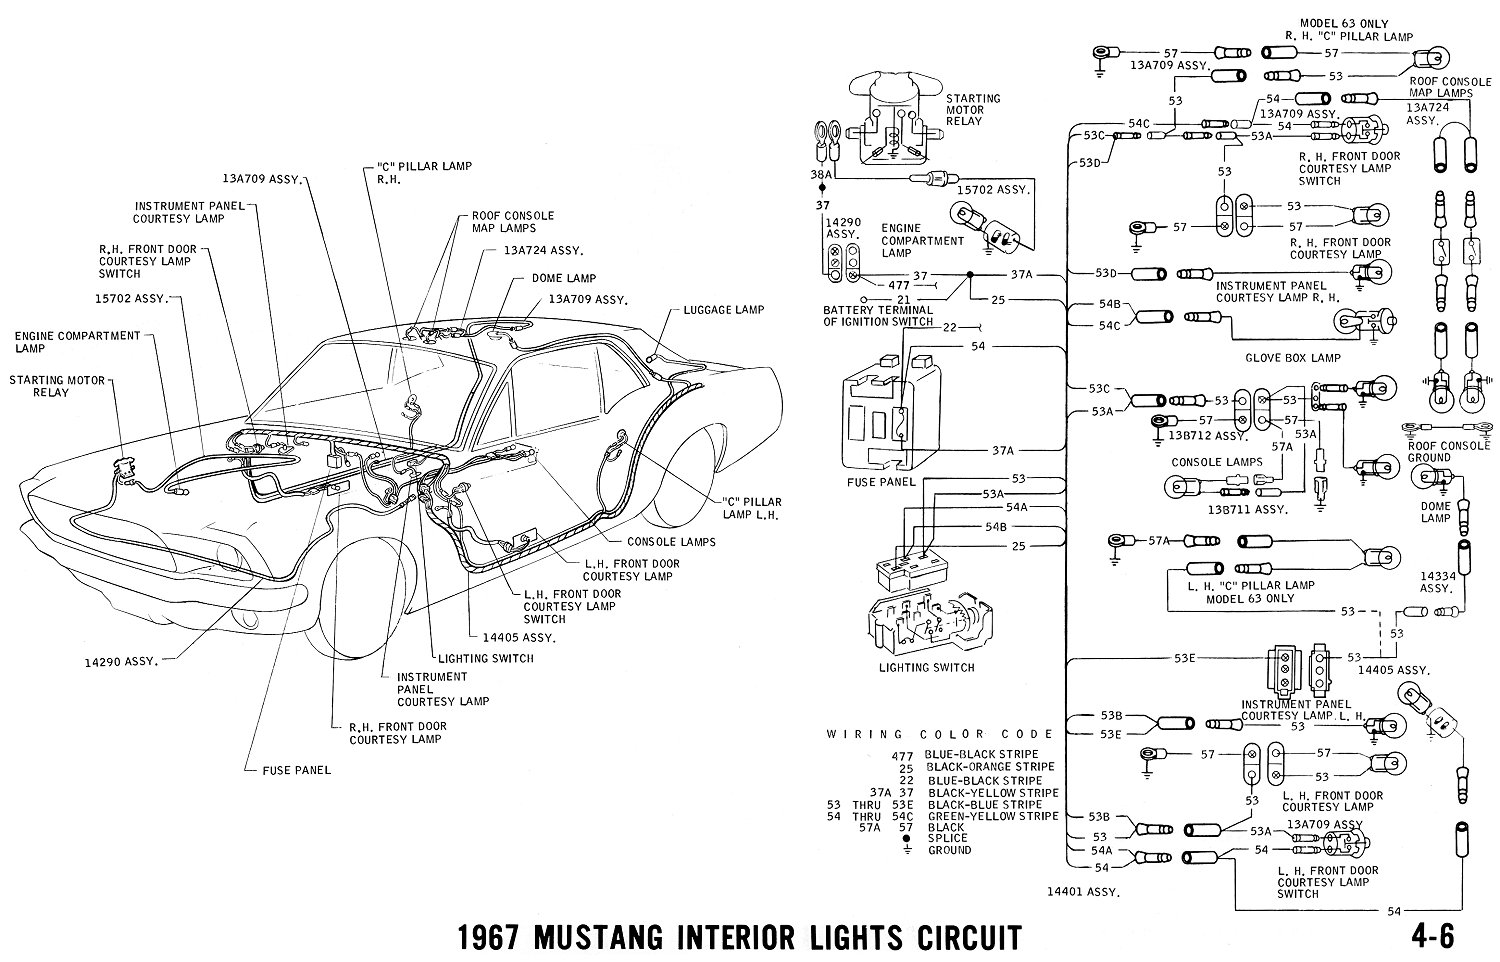 hight resolution of 1967 cougar fuse diagram simple wiring schema 1949 mercury 1967 cougar fuse box